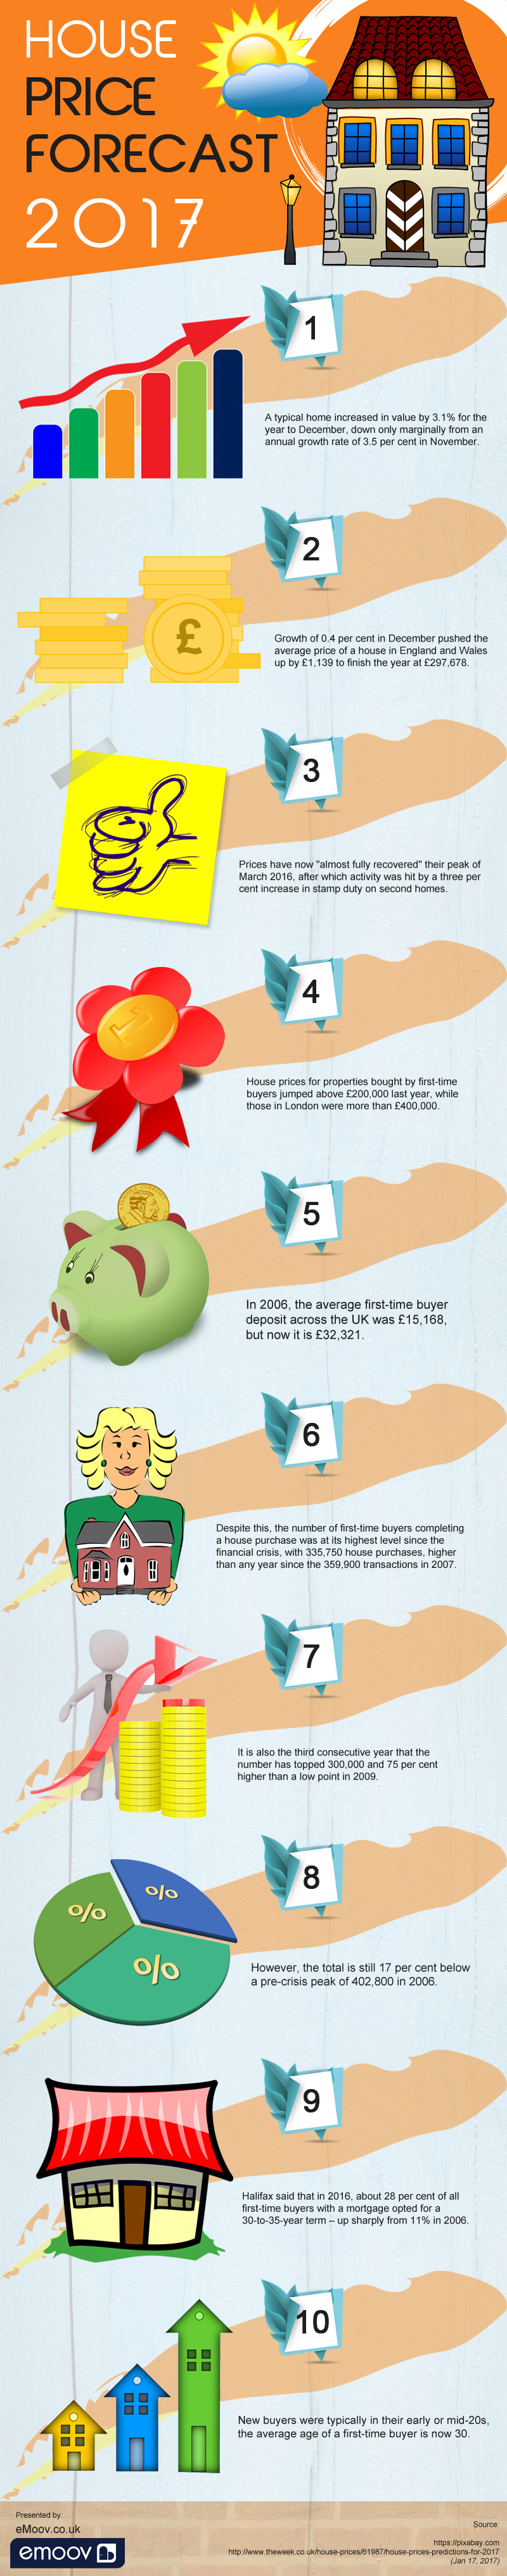 What House Prices Look Like This Year - Infographic